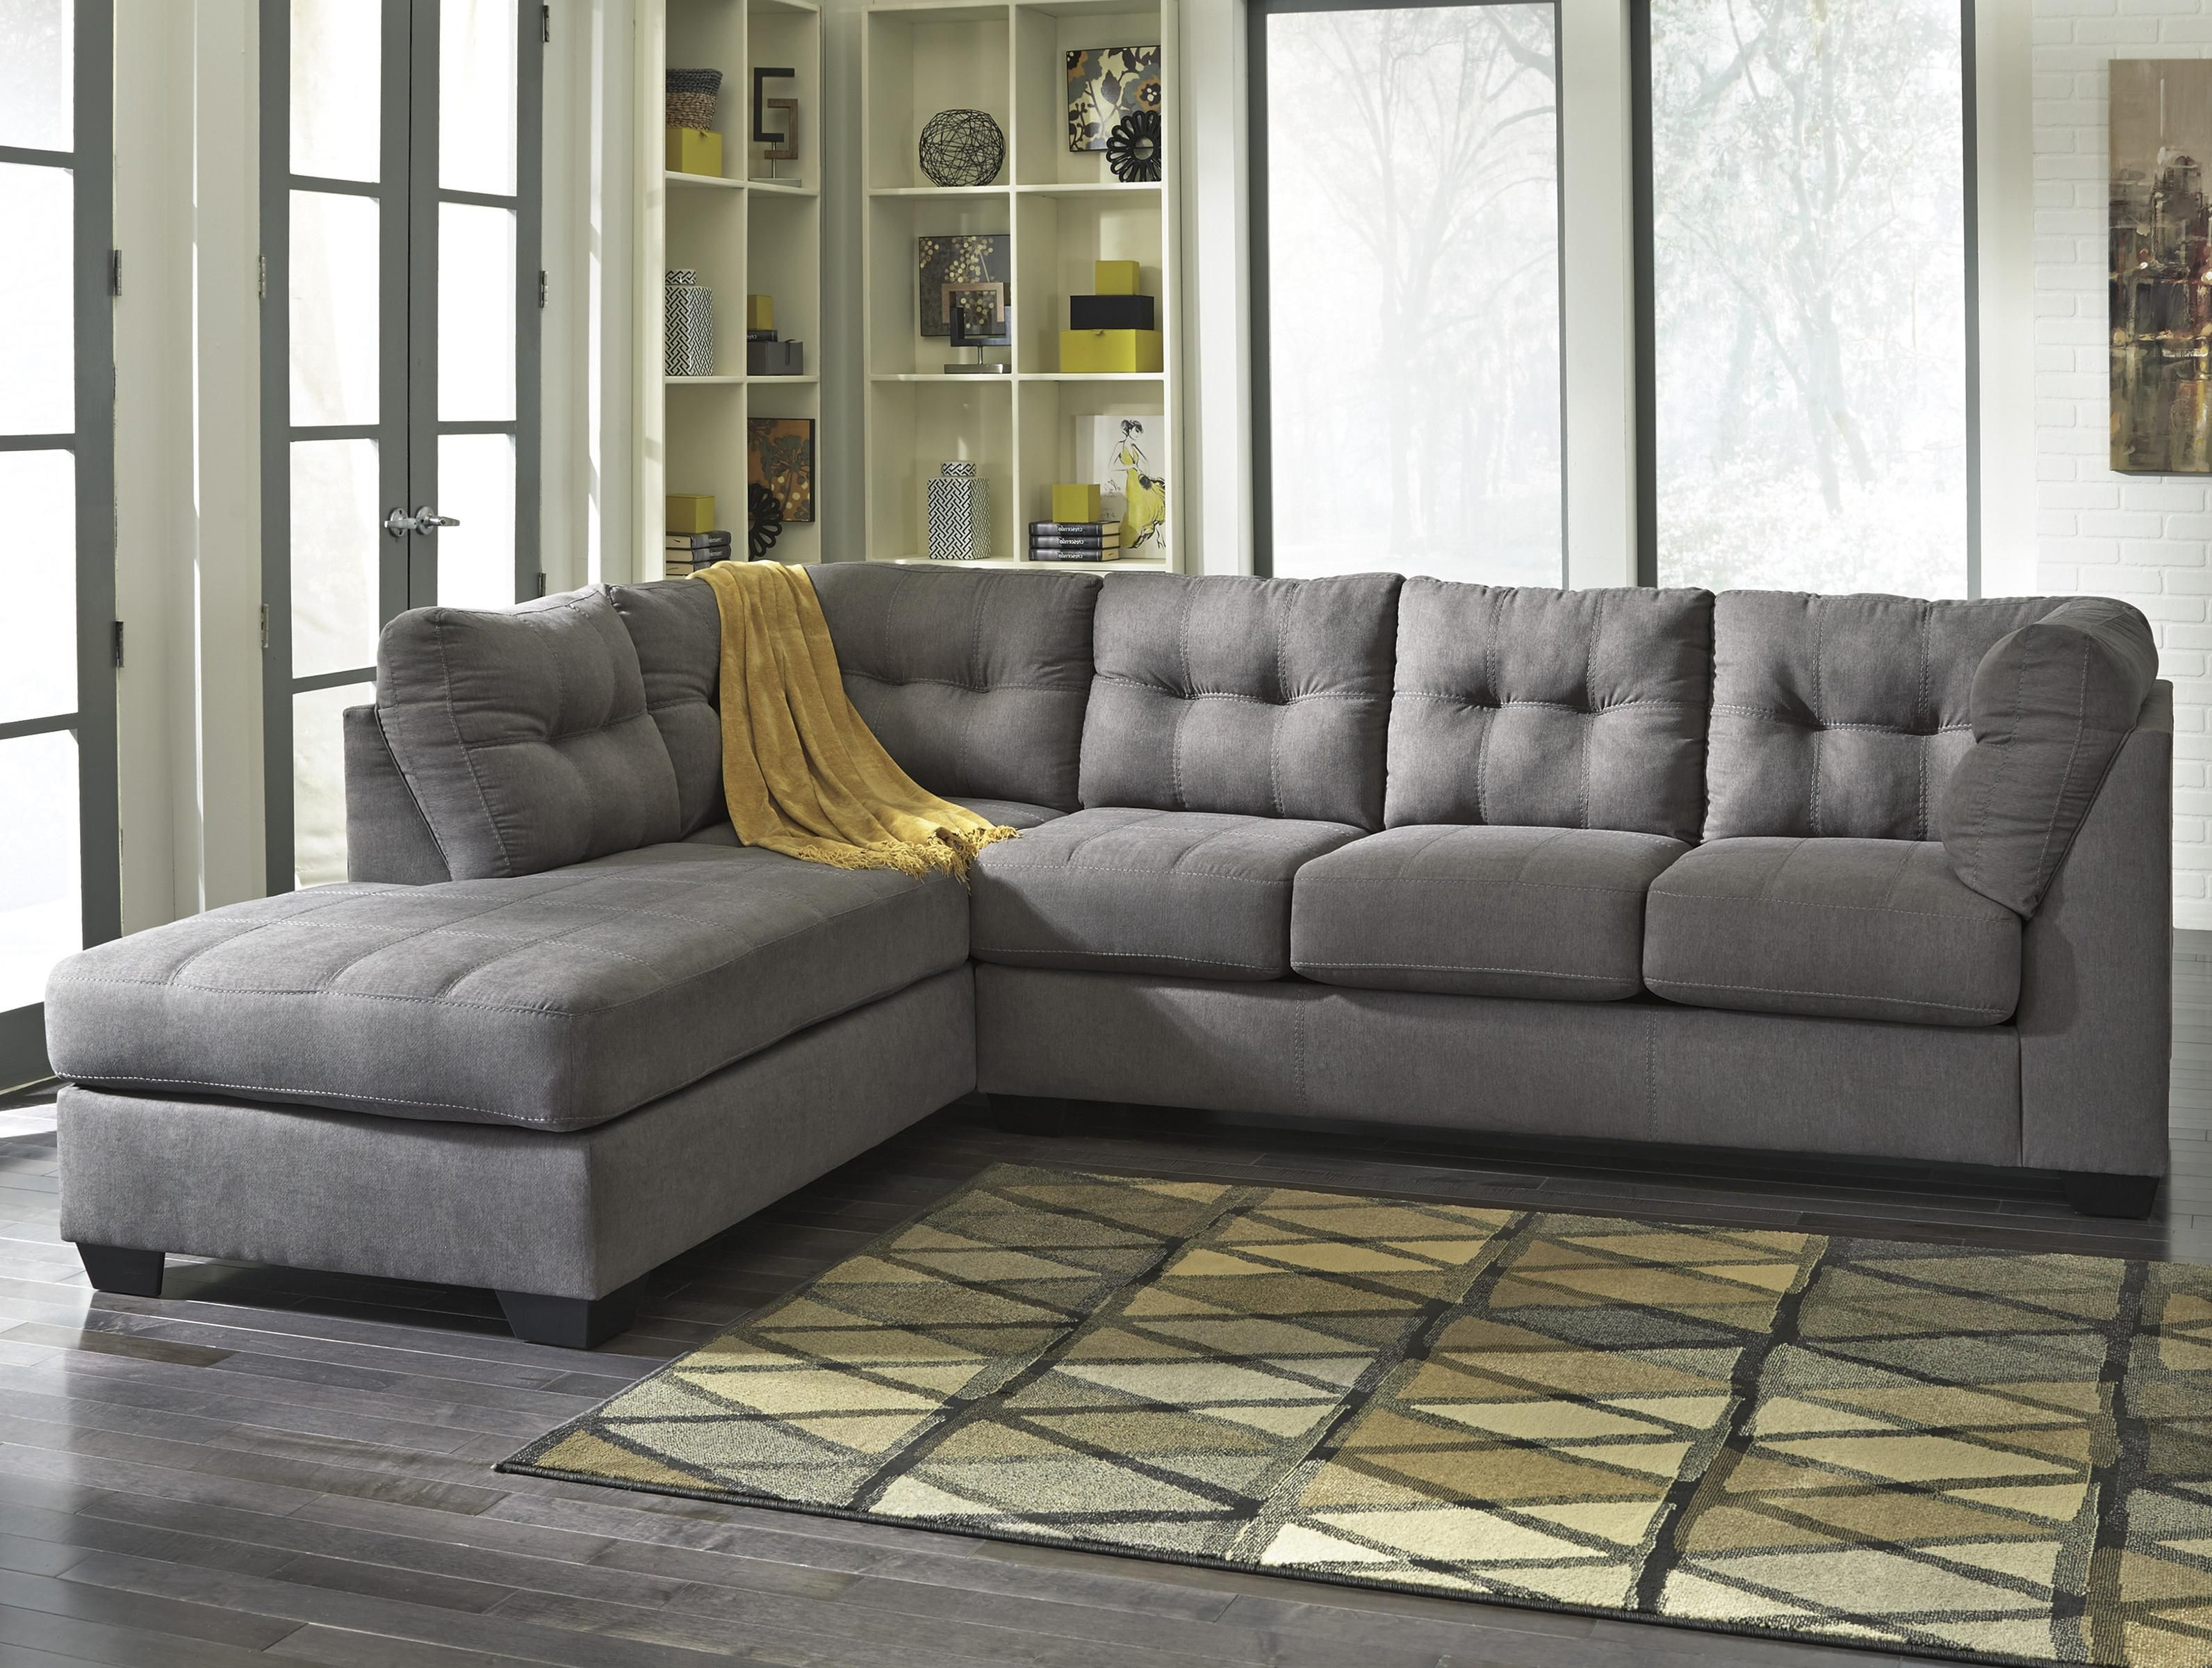 sets sofas gray leather of recliner light design full image clearance sofagrey sleeper sectional breathtaking grey smoke beaumont modern sofa size